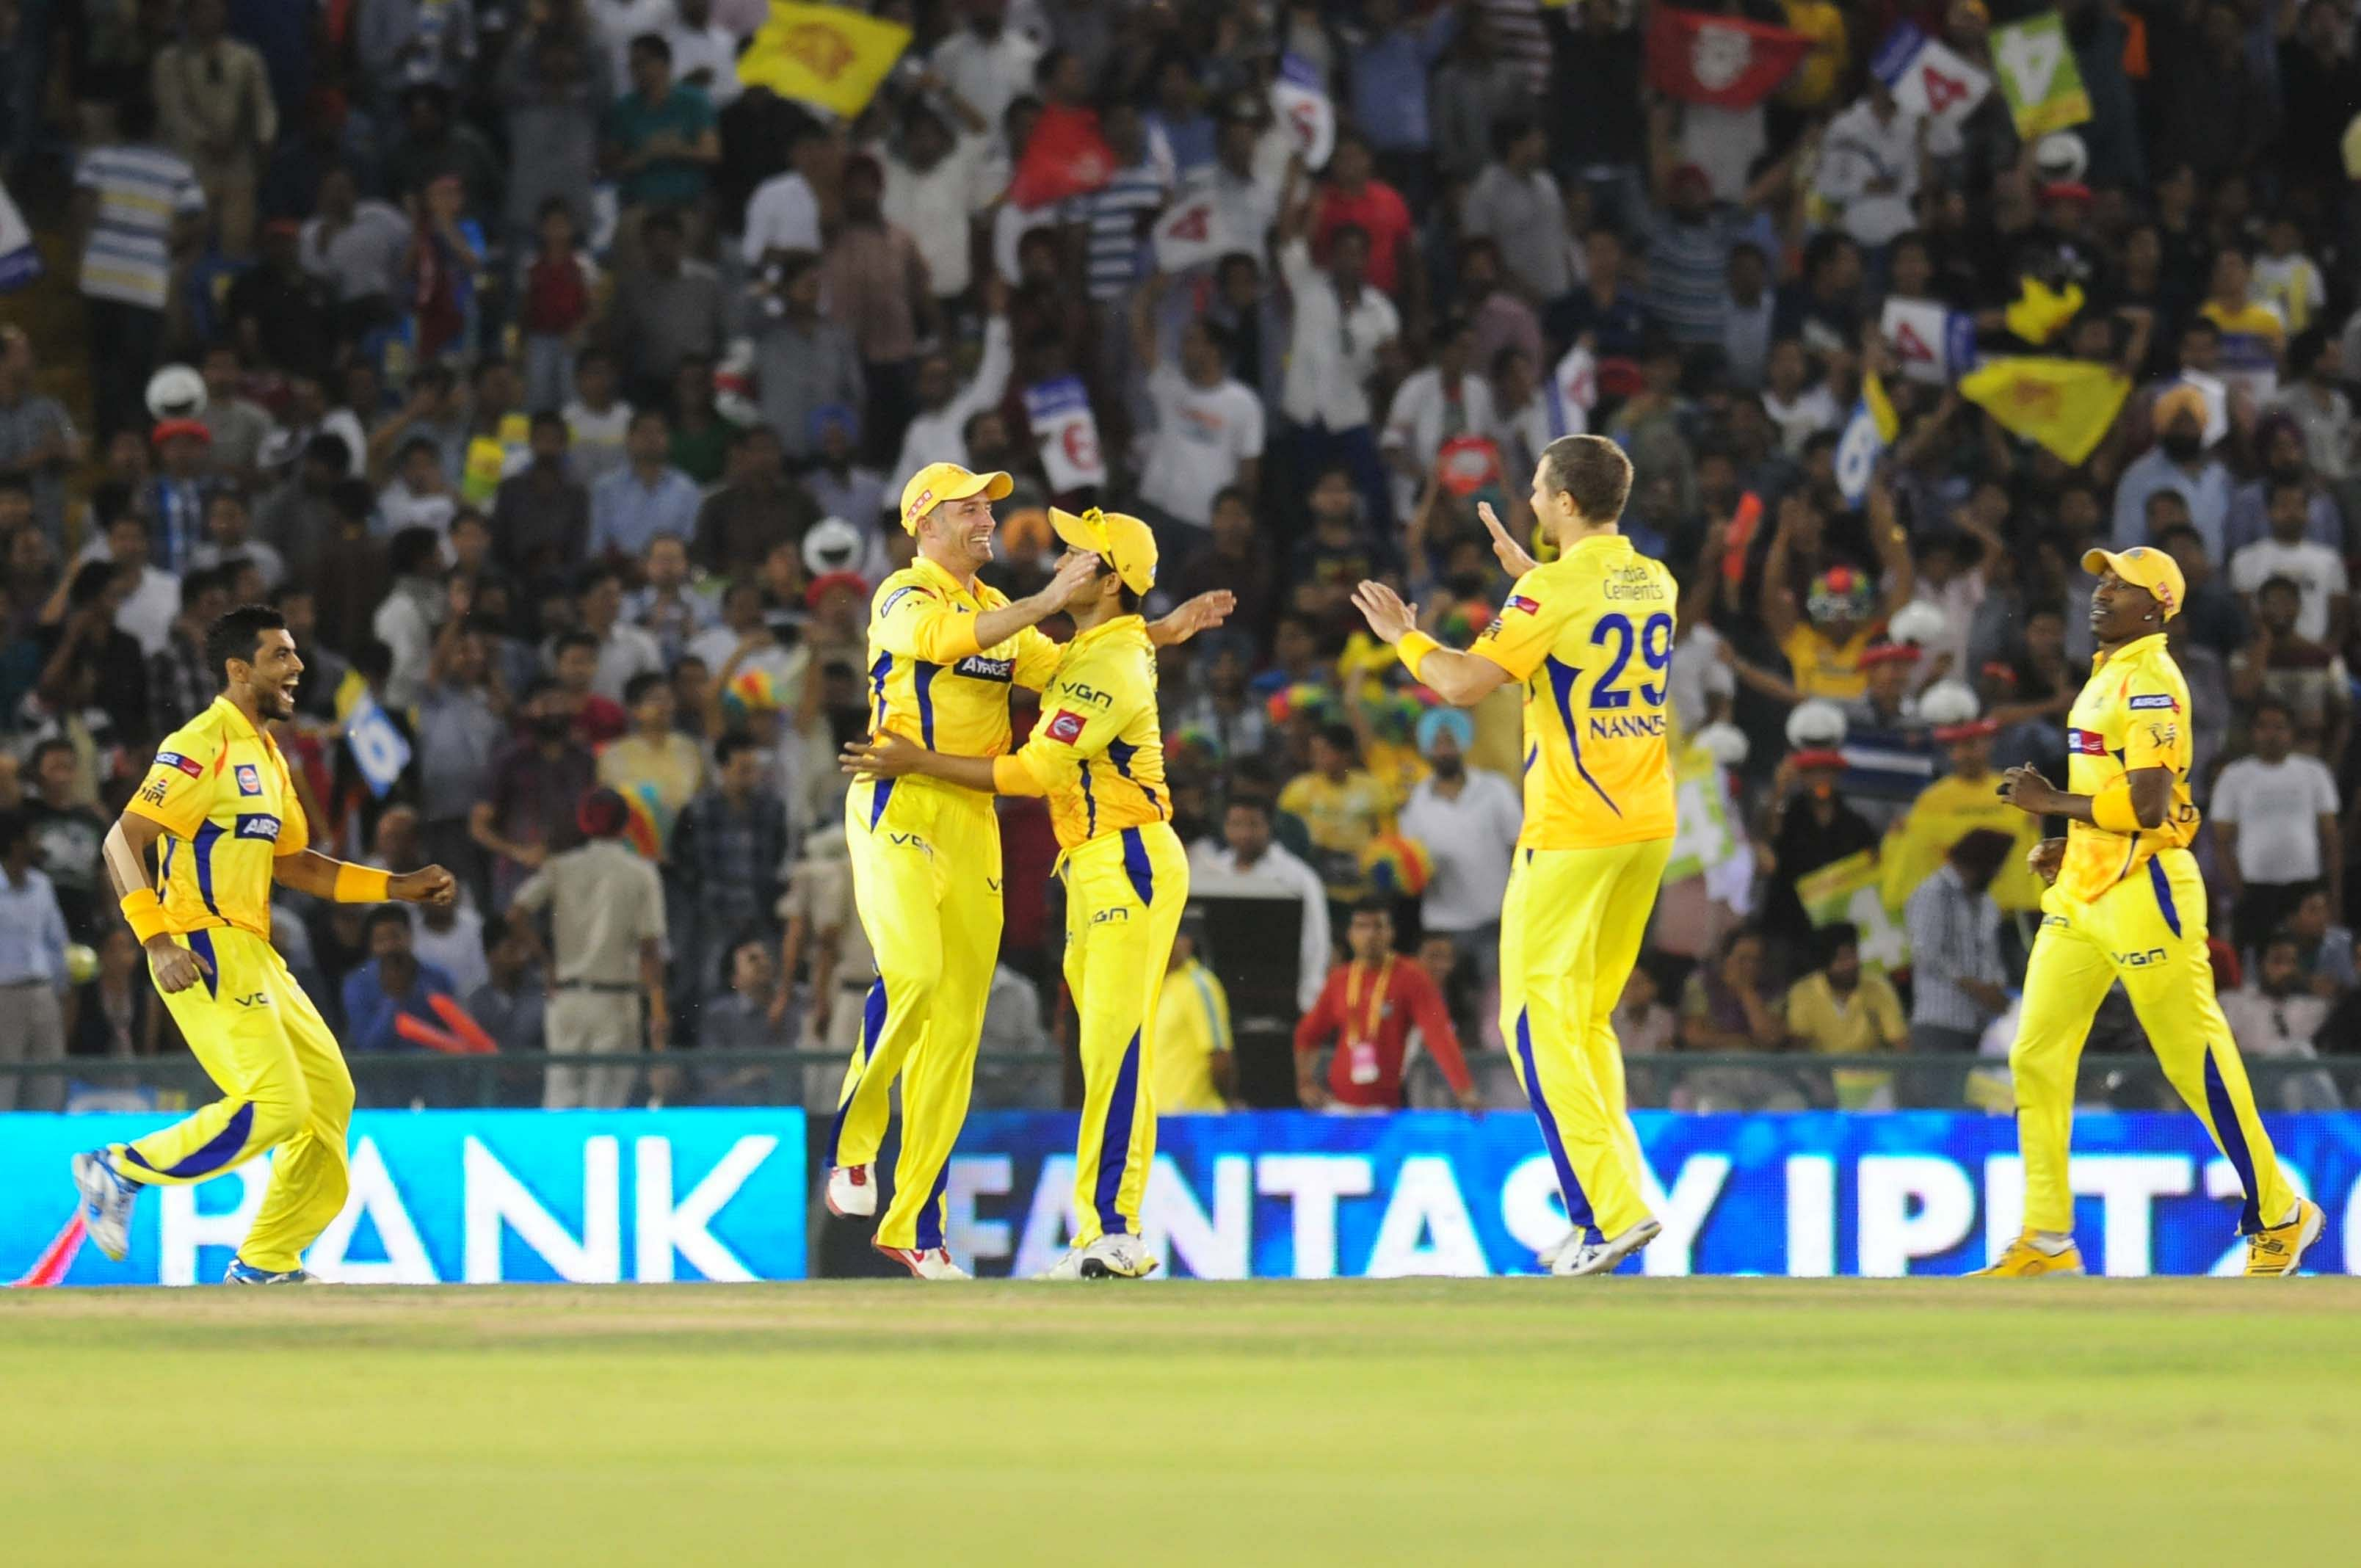 Kings XI Punjab beat Chennai Super Kings by six wickets